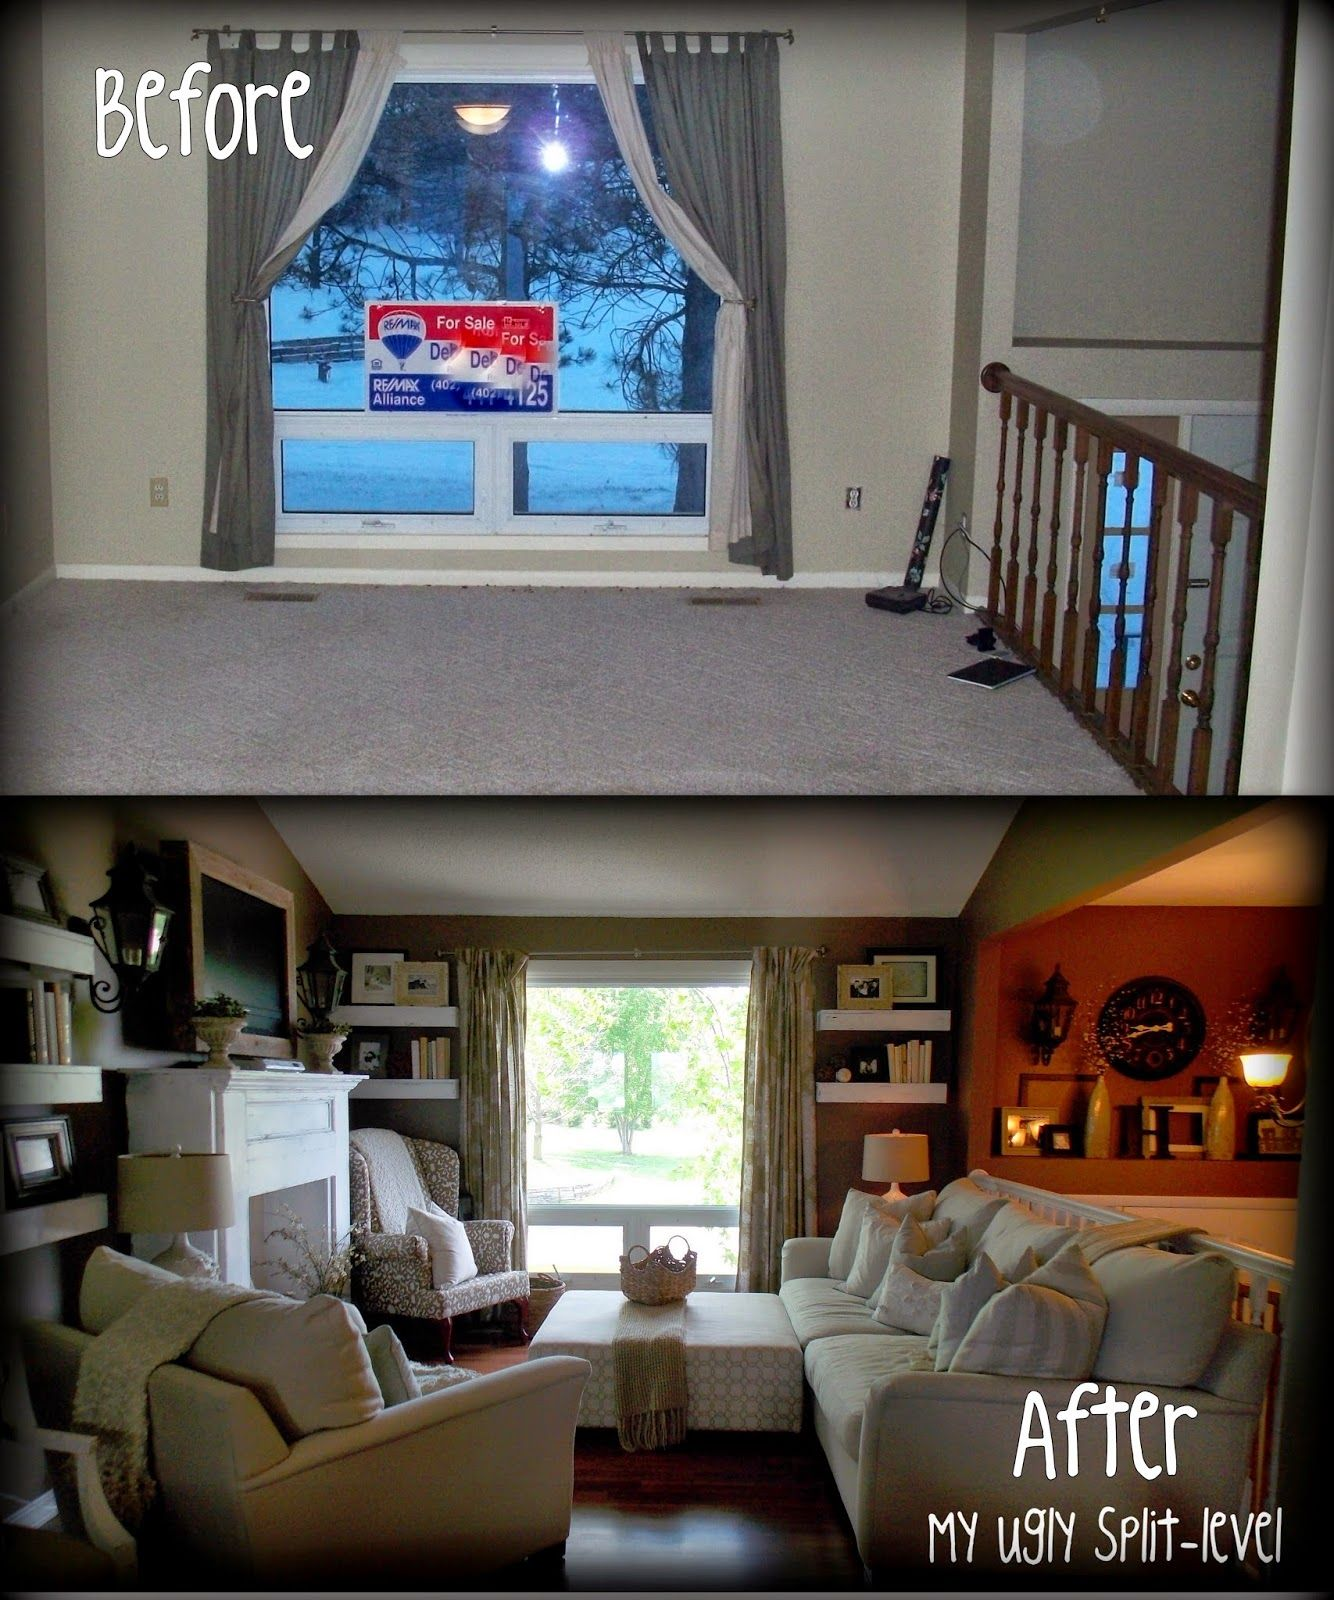 Split Level Home Exterior Makeover: This Lady Has Tons Of Thrifty Ideas For Redecorating A